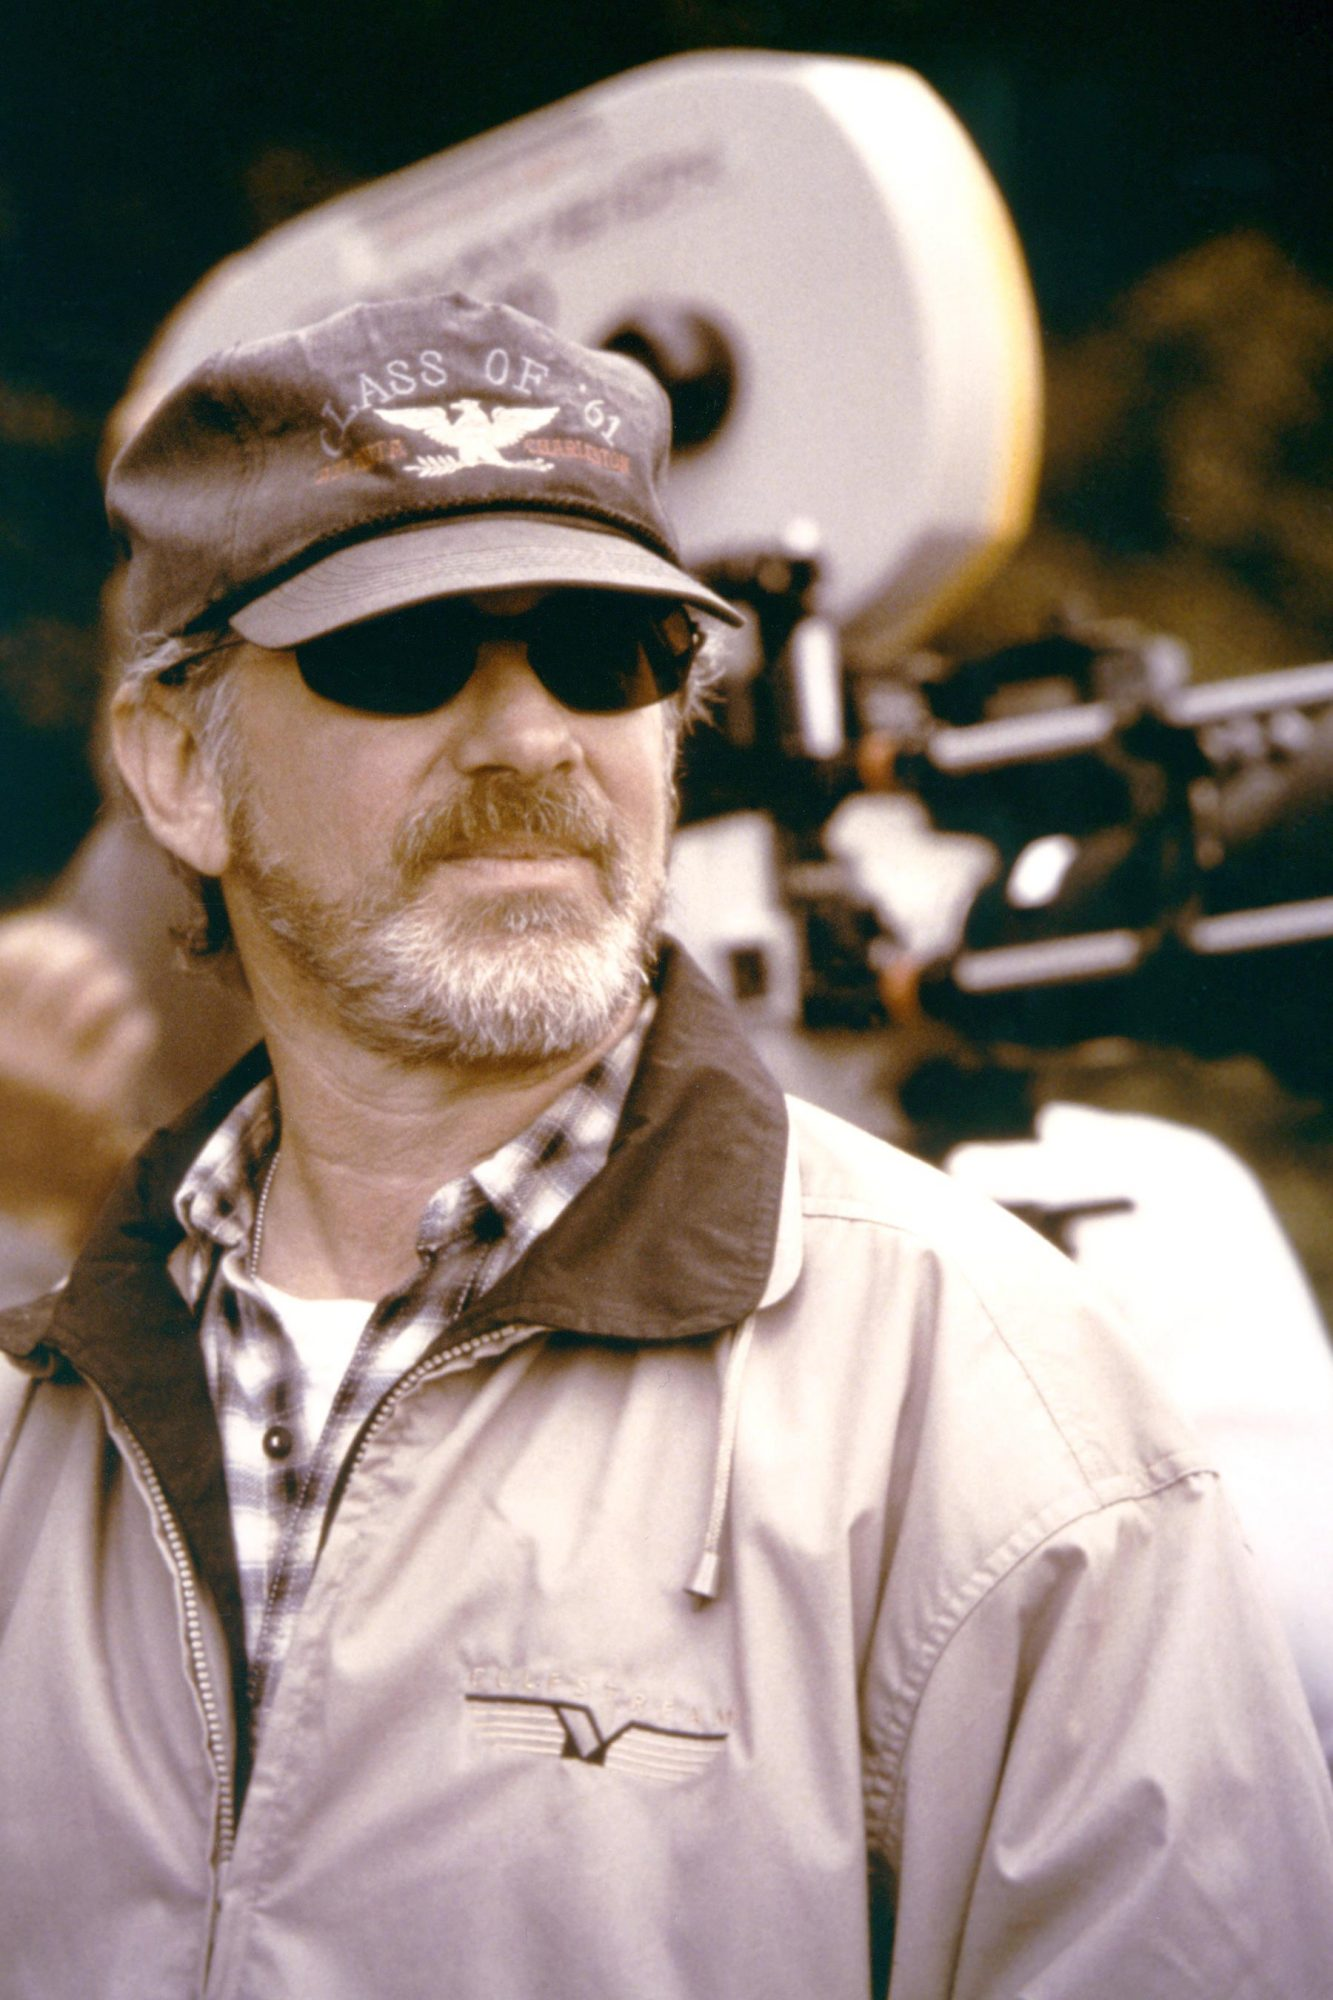 On the set, Steven Spielberg / Saving Private Ryan / 1998 directed by Steven Spielberg [Dreamworks LLC /Paramount Pictures]